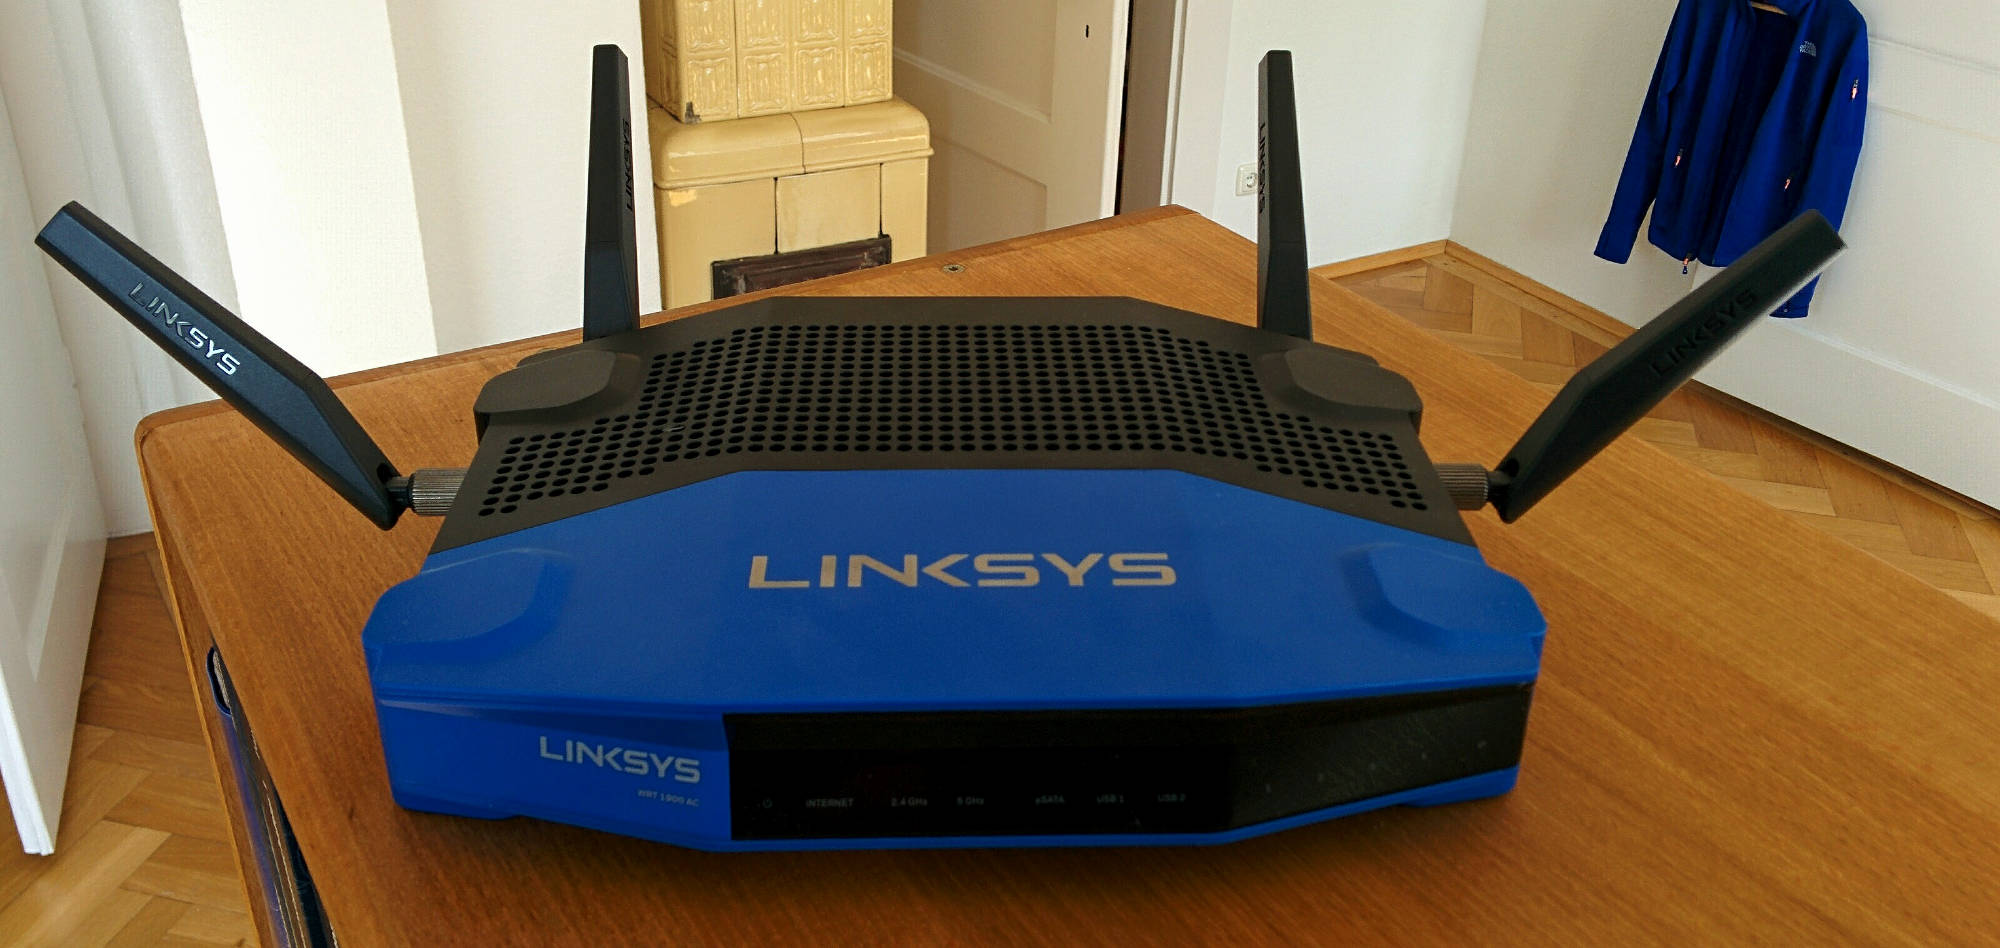 My Complete Openwrt Setup Guide Wireless Home Network Diagram Simple Linksys 1900 Ac Photo